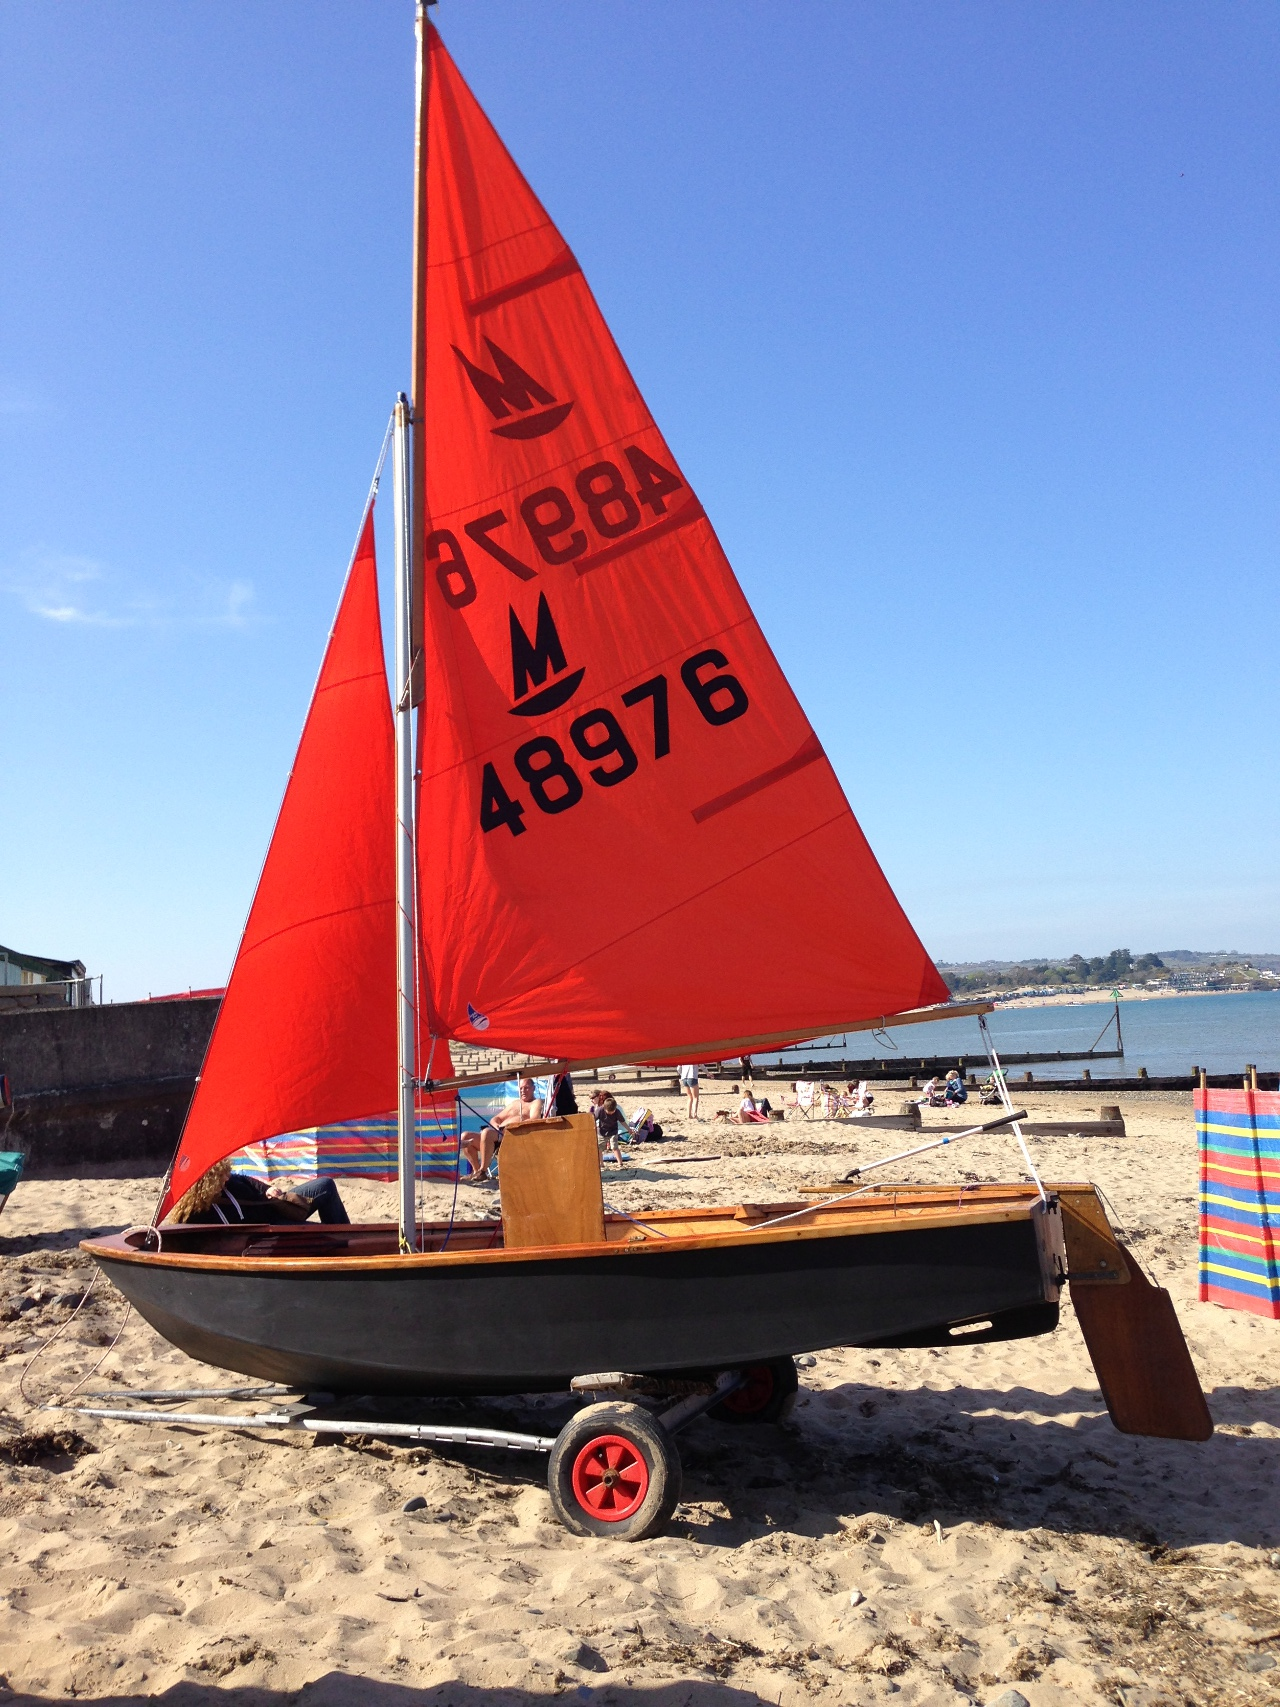 Mirror dinghy rigged up on a sandy beach with sails hoisted